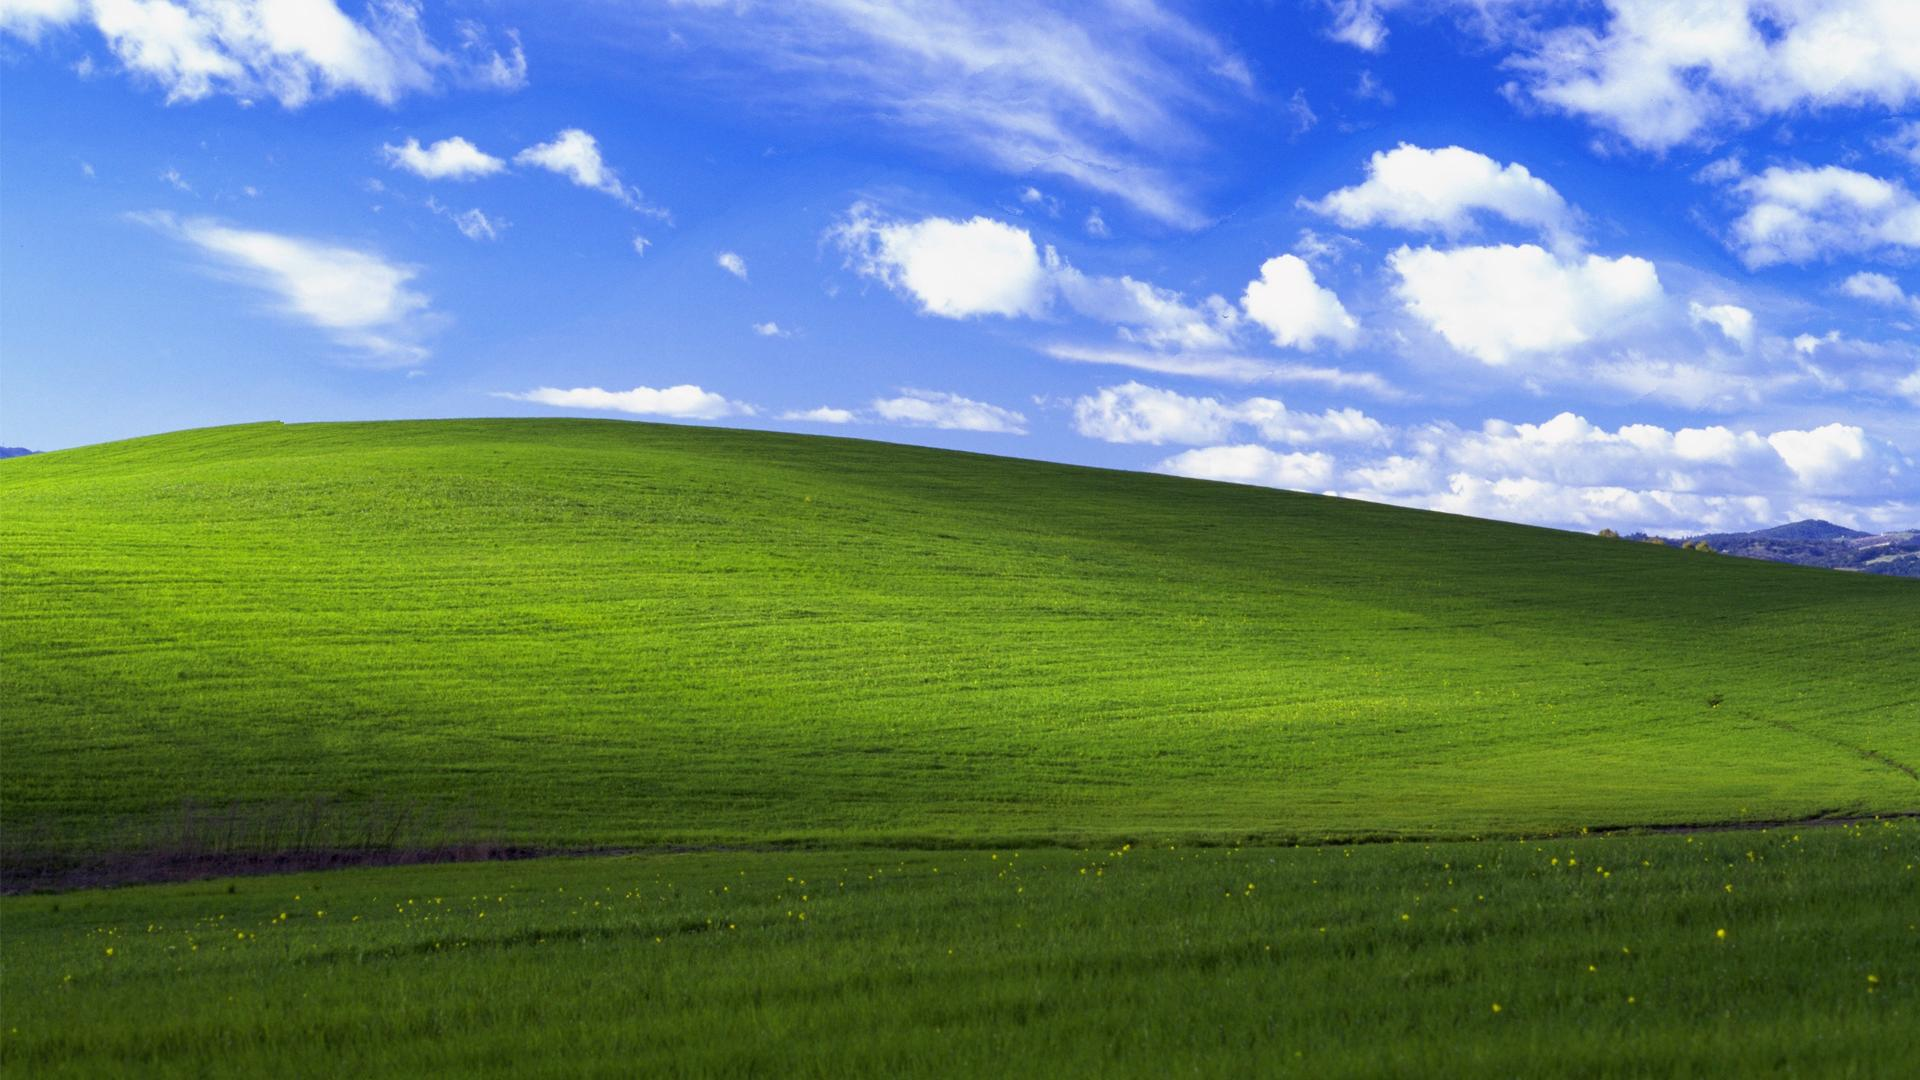 Windows XP Wallpaper 2